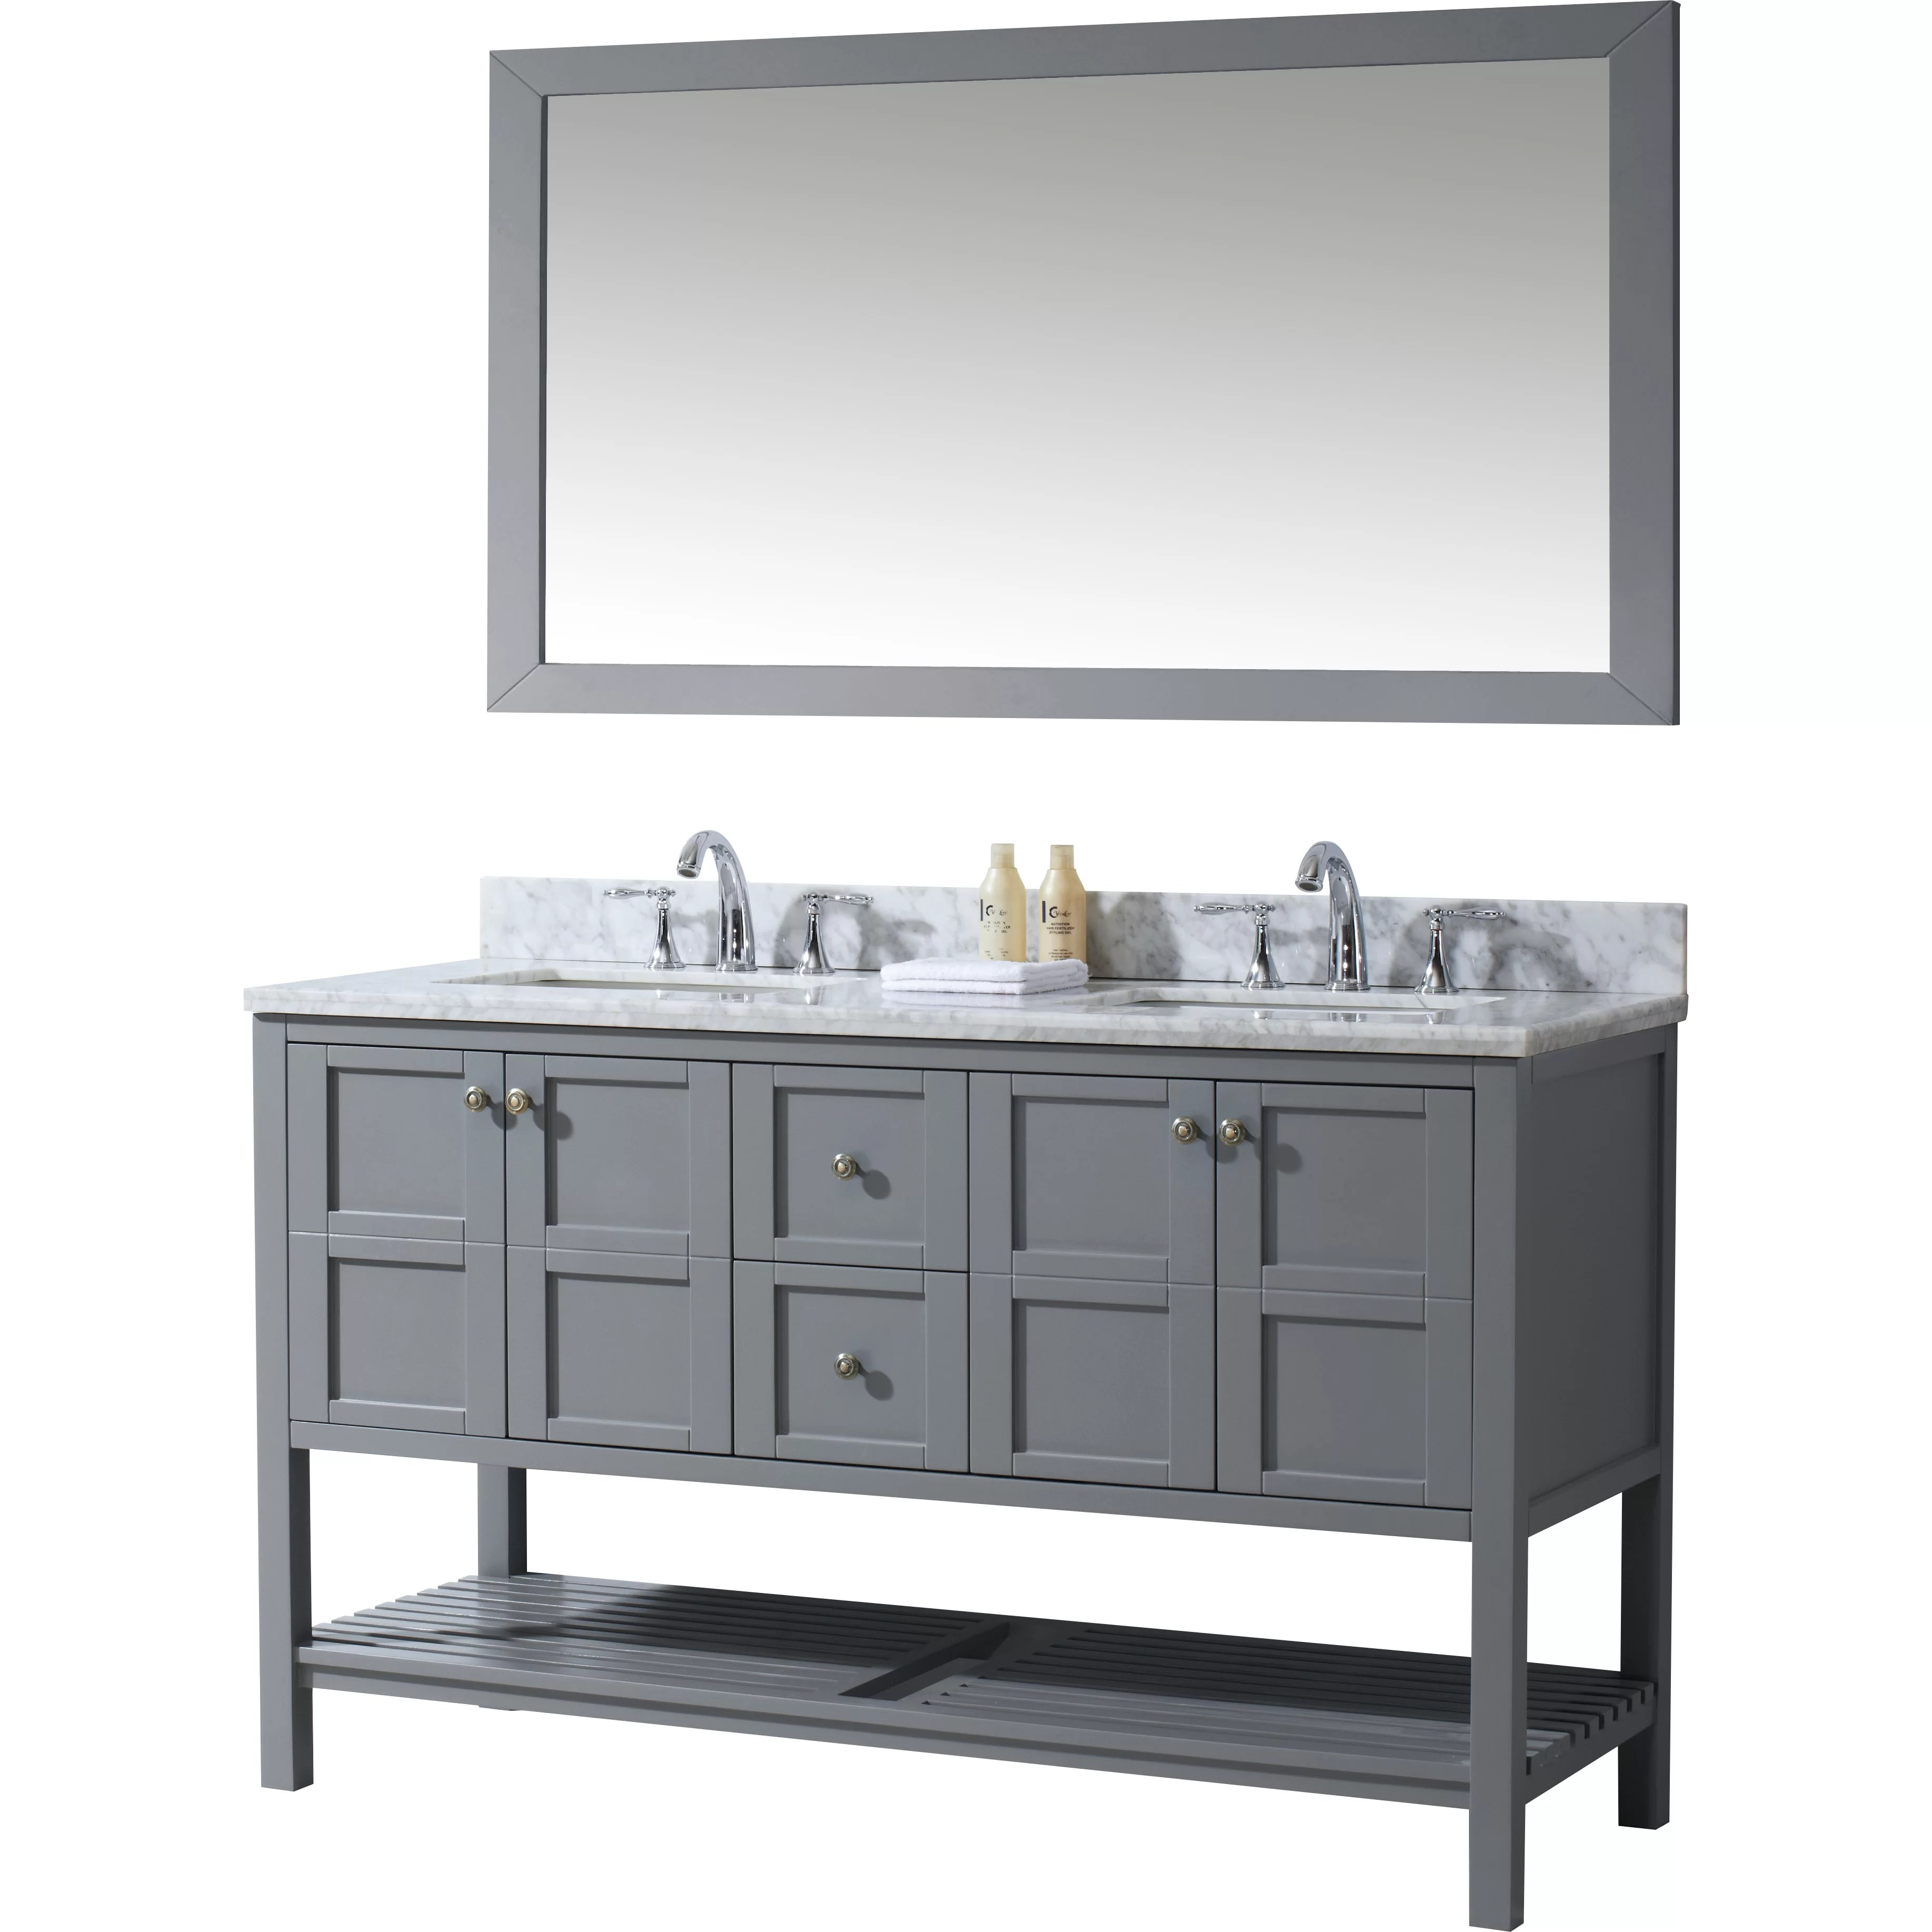 Virtu Winterfell 60 Double Bathroom Vanity Set with White Carrara Top and Mirror  Reviews